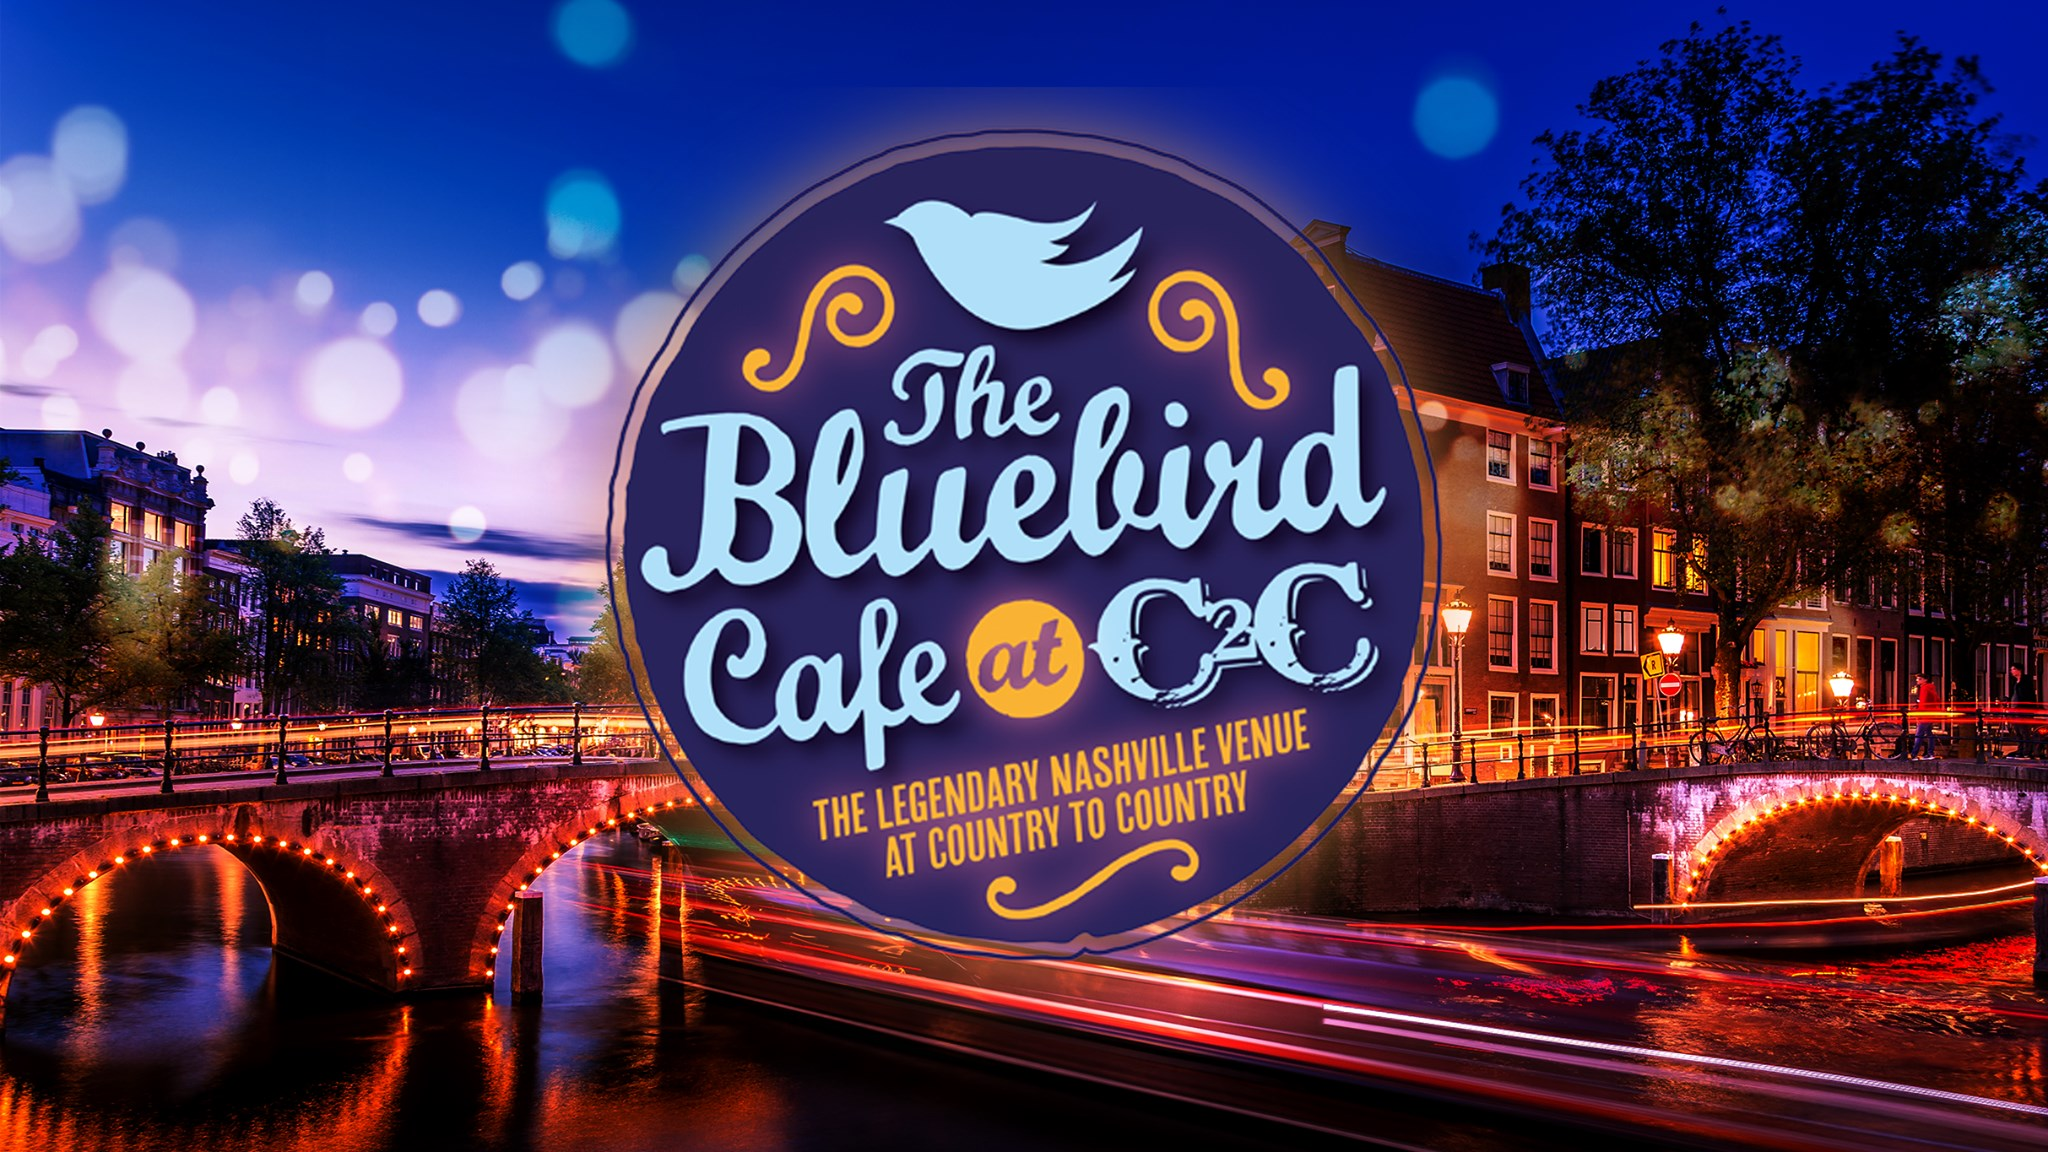 The Bluebird Cafe at C2C Amsterdam